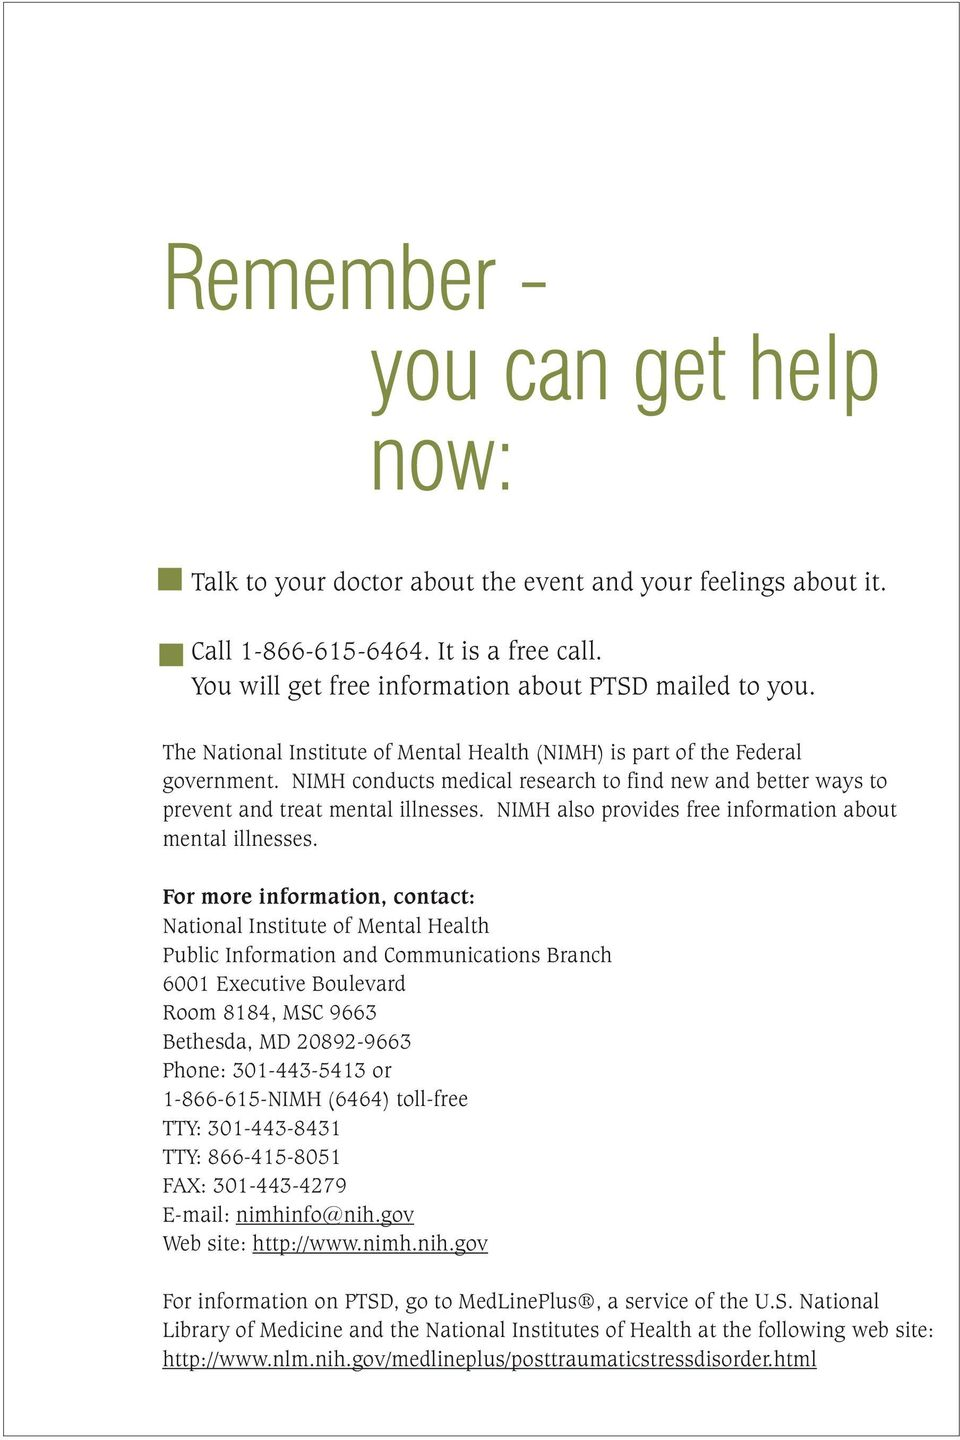 NIMH also provides free information about mental illnesses.